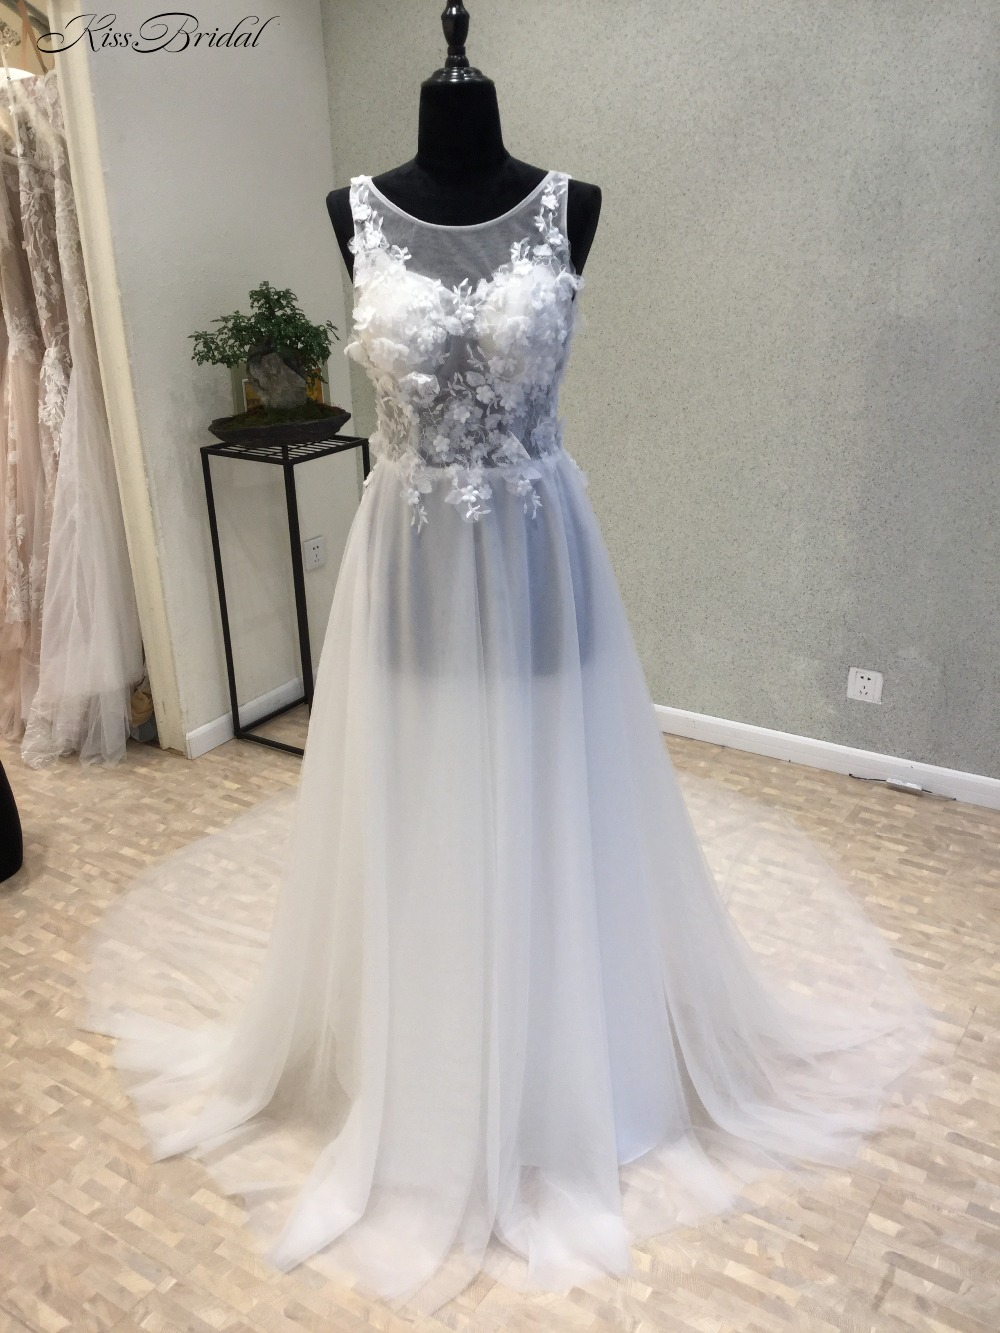 Cheap Beach Style Wedding Dresses 58 Off Plykart Com,Formal Dresses For Wedding Guest Plus Size